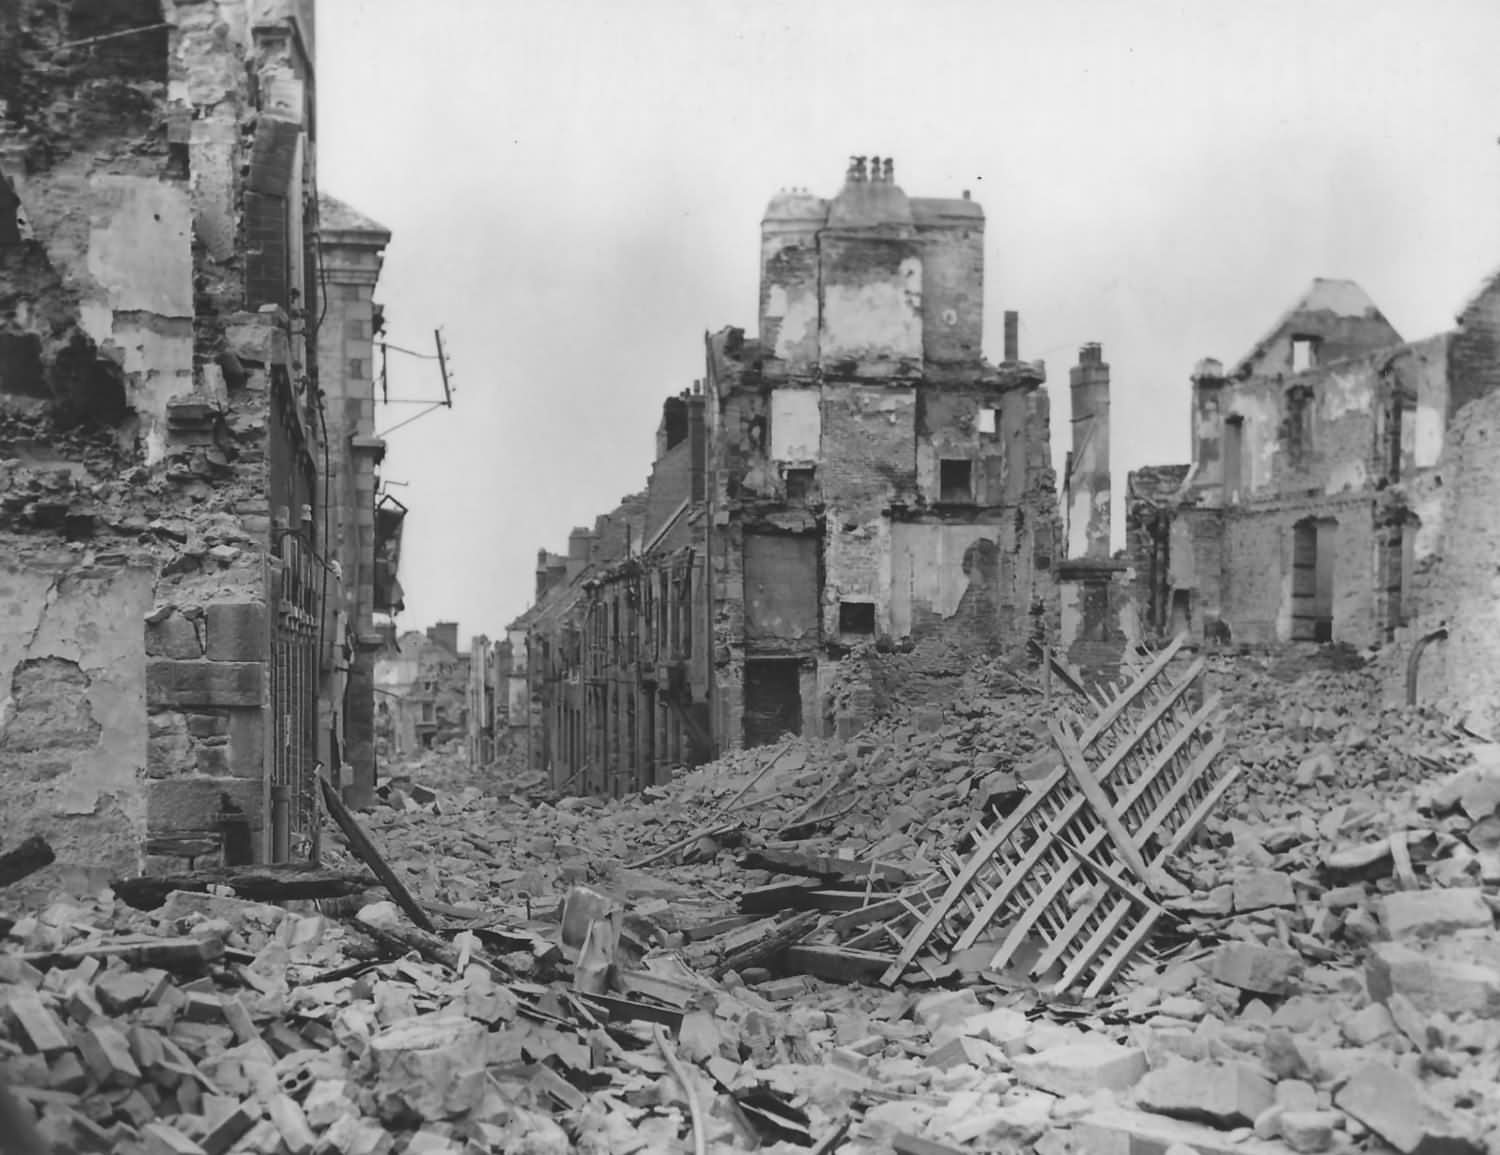 Destruction in Vire Normandy France 1944